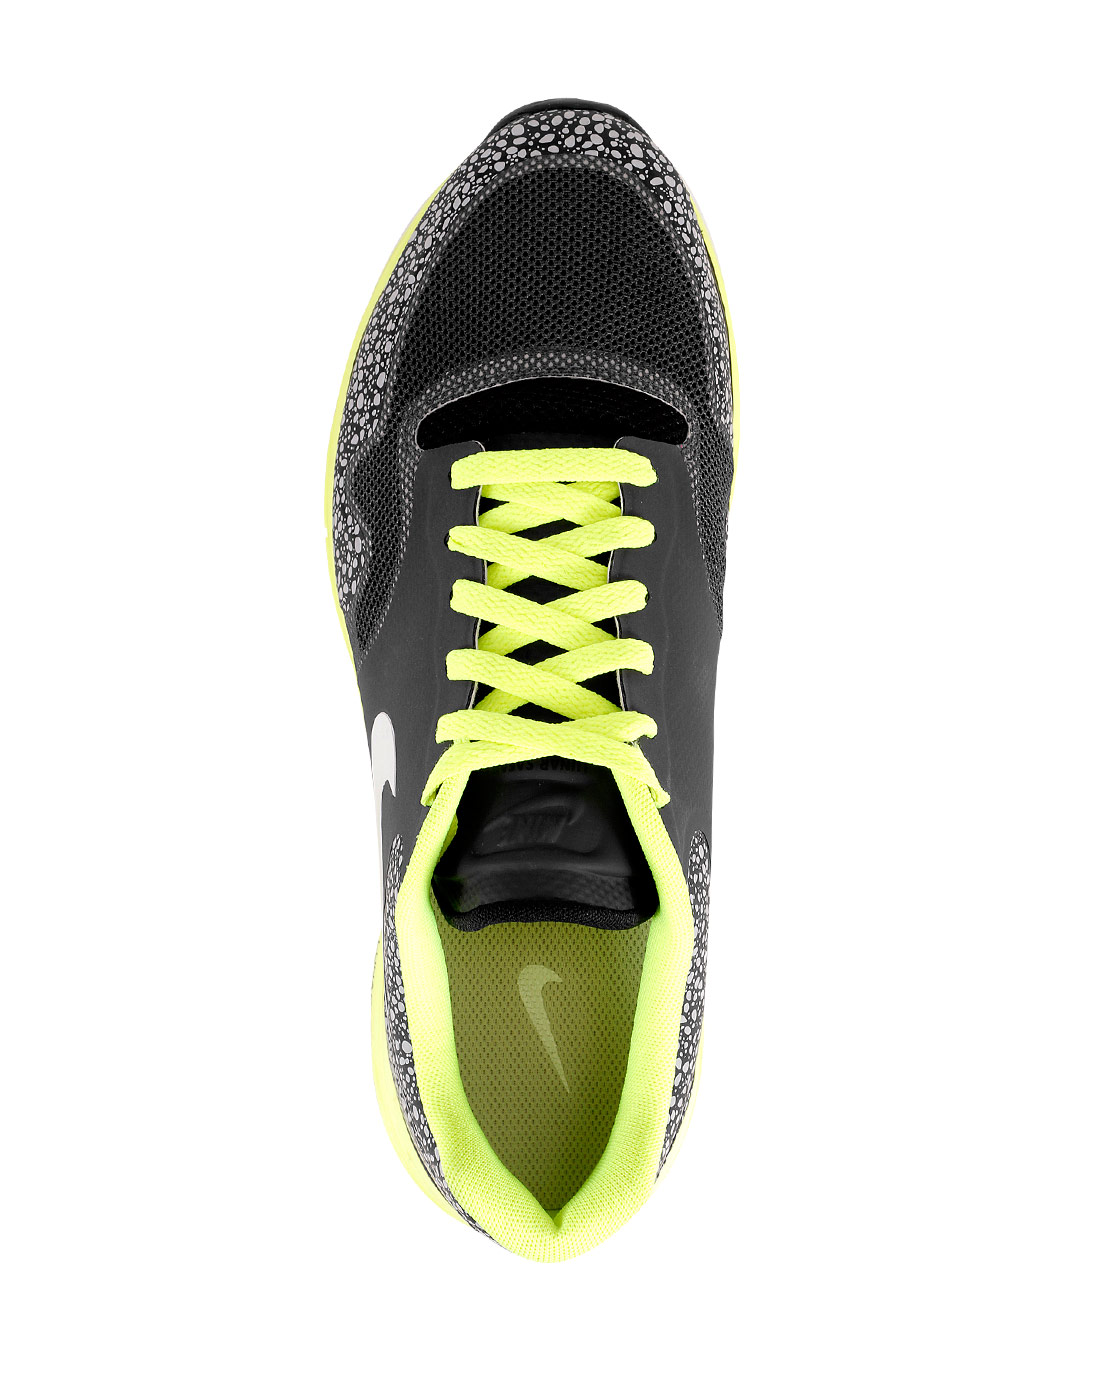 Nike Lunar Safari 'Anthracite/White-Volt-Black'